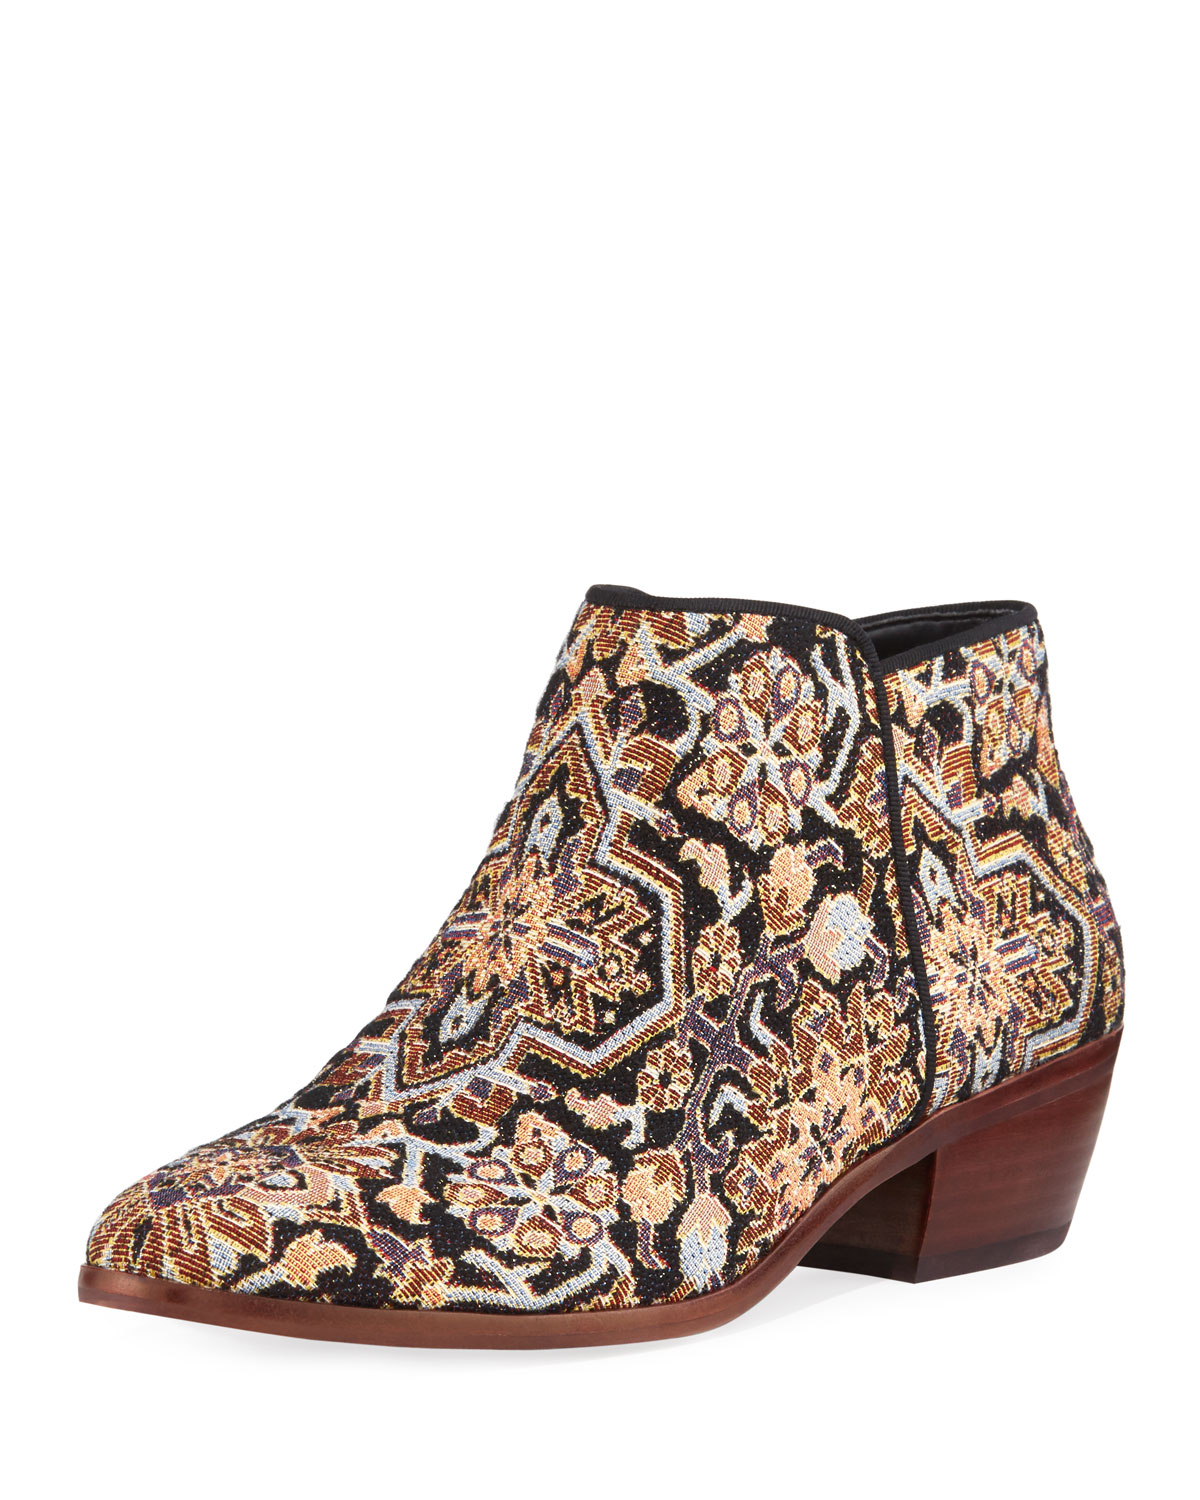 6dbc298223ae4 Sam Edelman Petty Low Tapestry Ankle Bootie